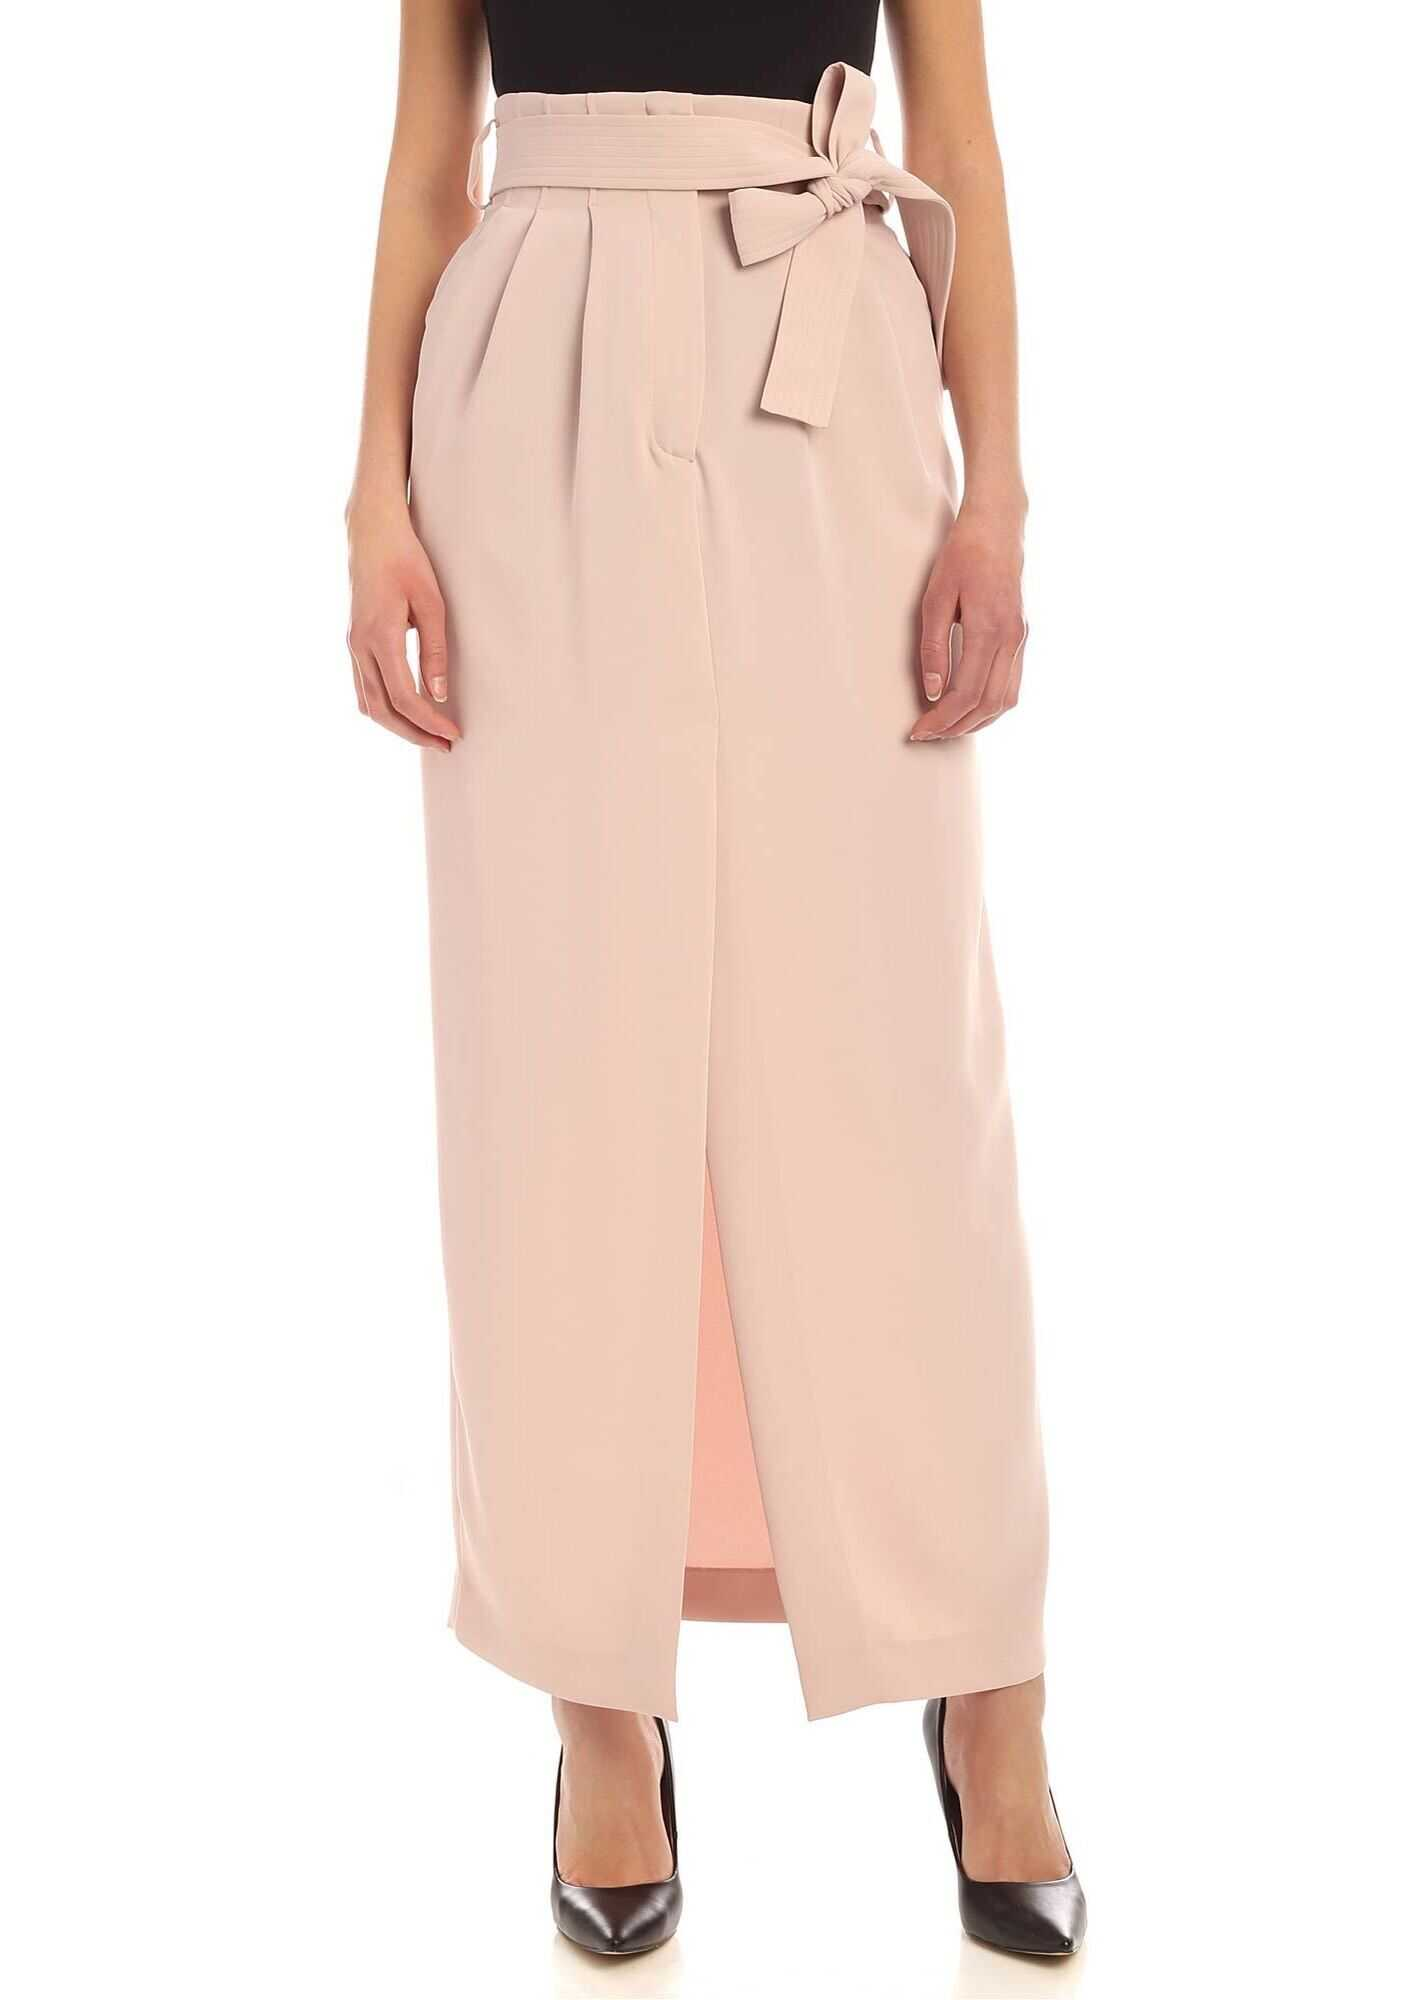 P.A.R.O.S.H. Pleated Skirt In Pink Pink